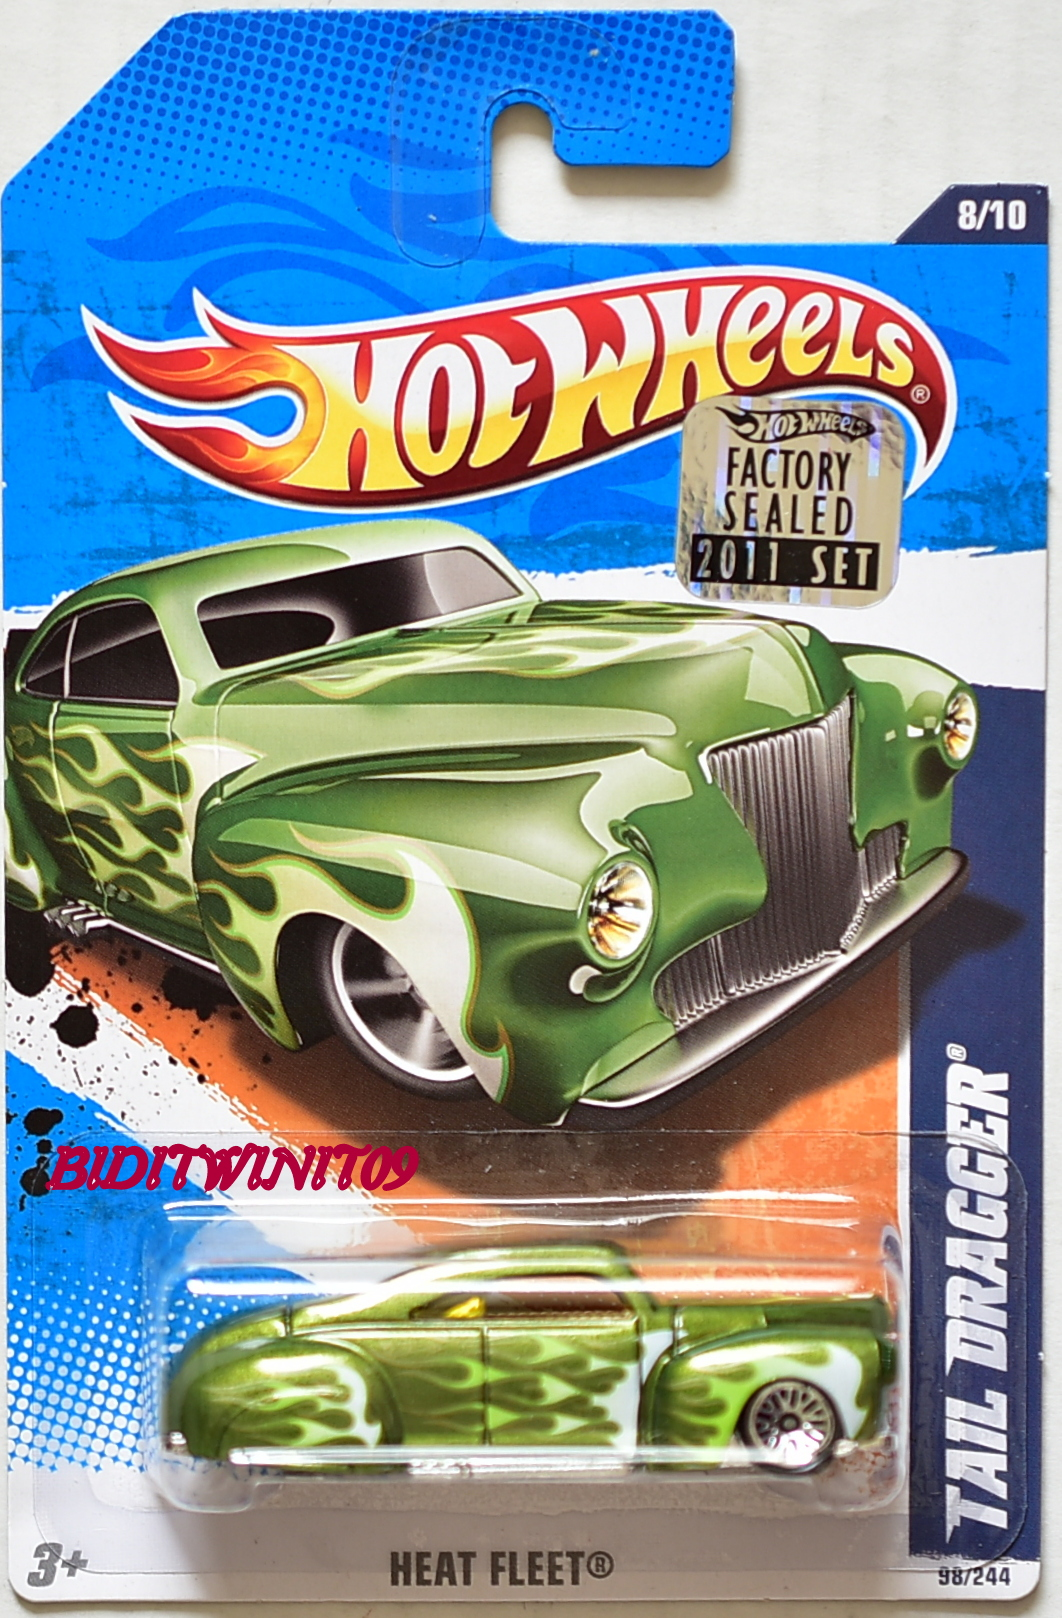 HOT WHEELS 2011 HEAT FLEET TAIL DRAGGER #8/10 GREEN FACTORY SEALED